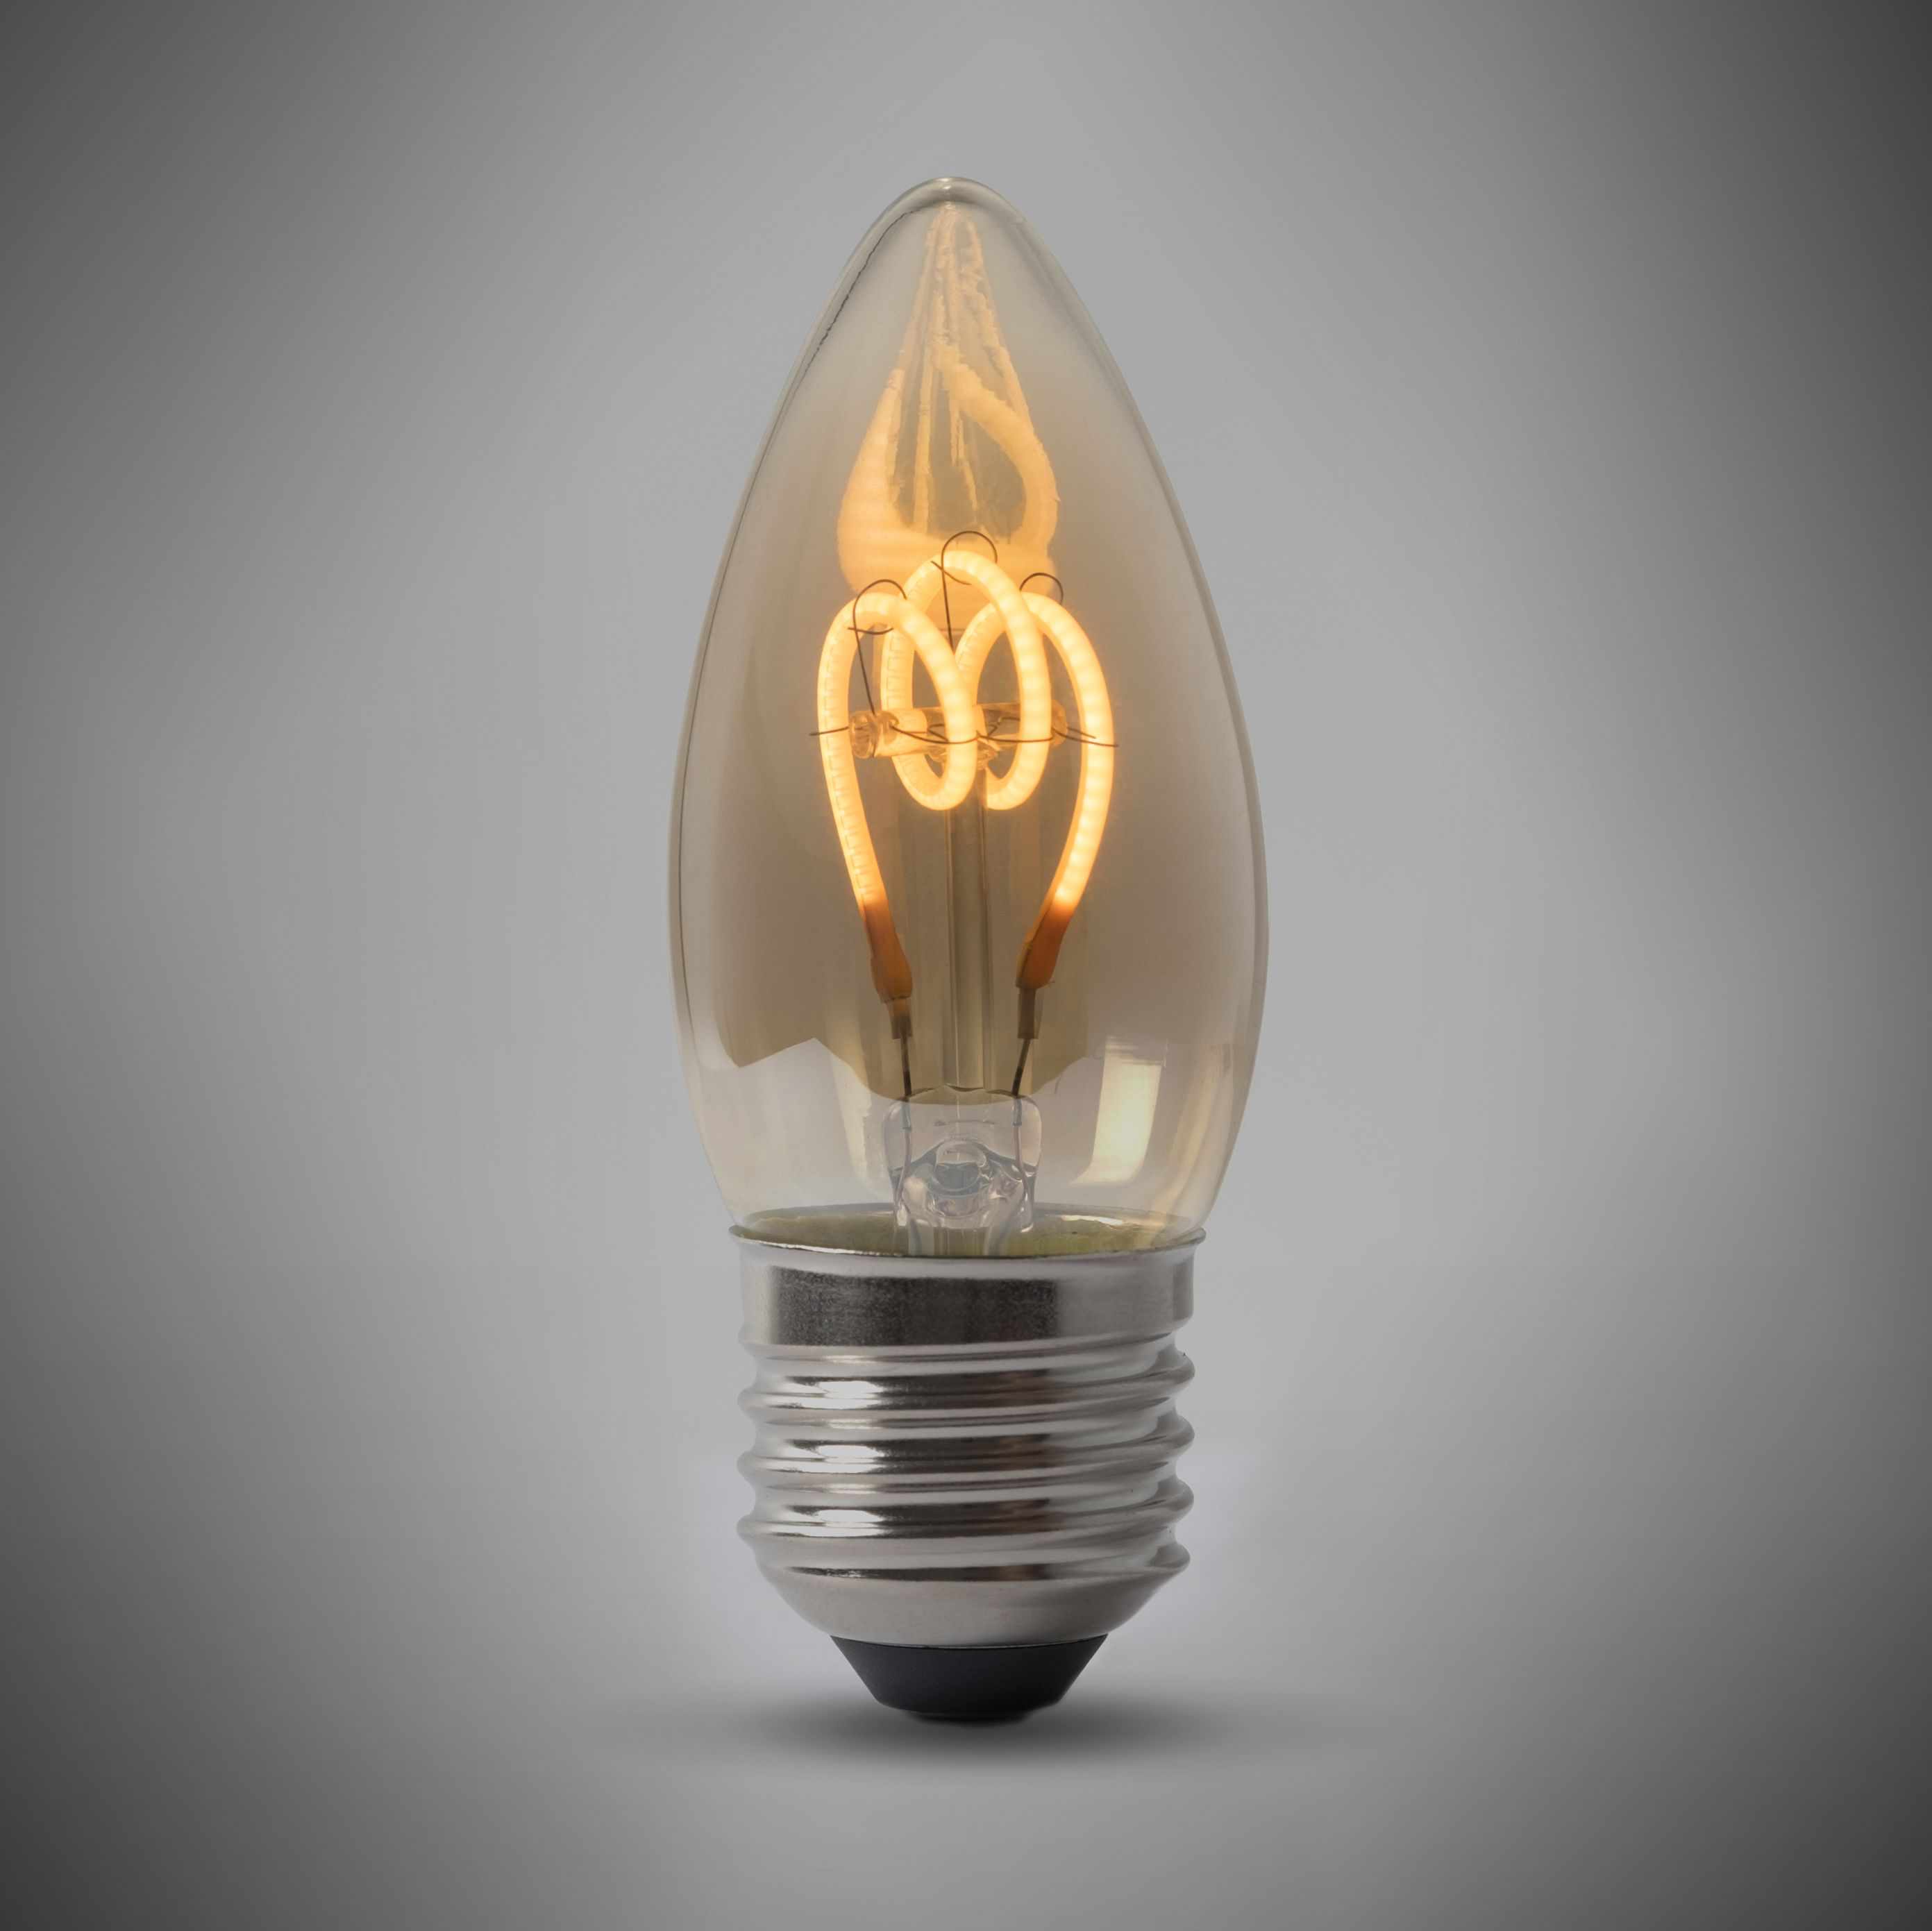 The Soho Lighting Co Light Bulb Led Light Bulb Bulb